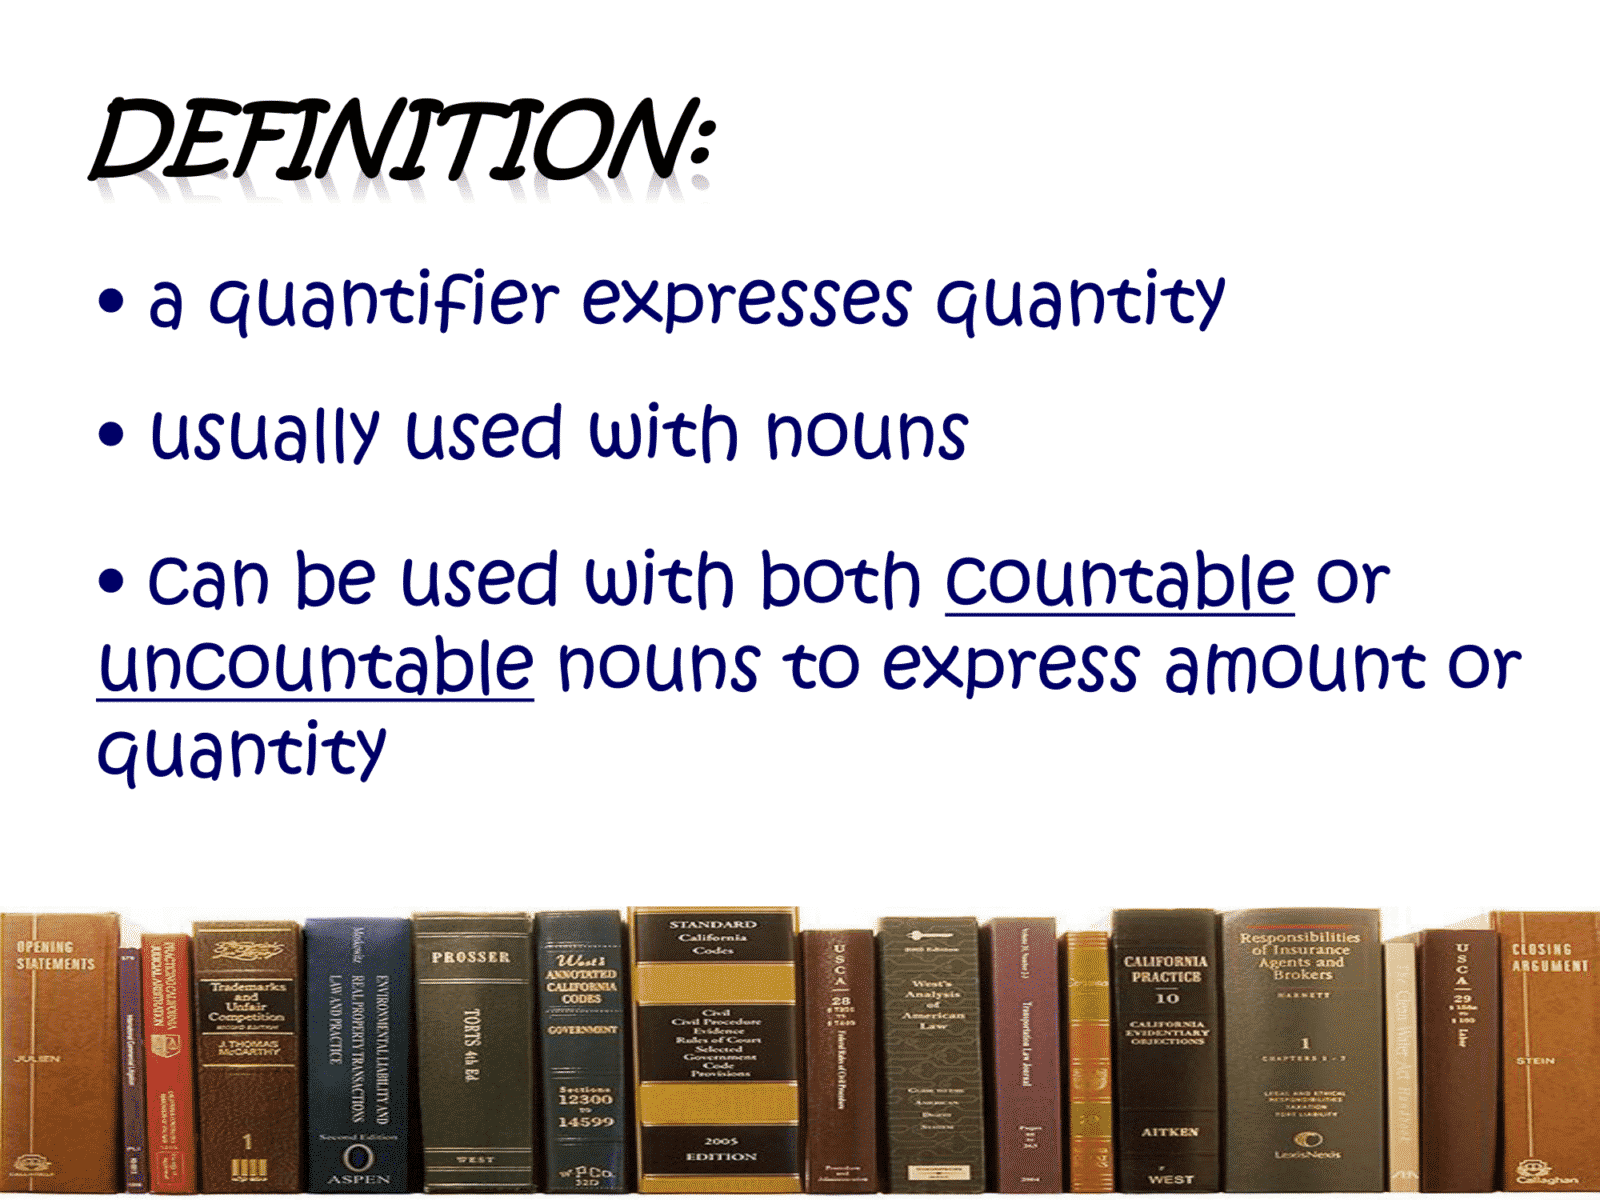 Definition of Quantifiers